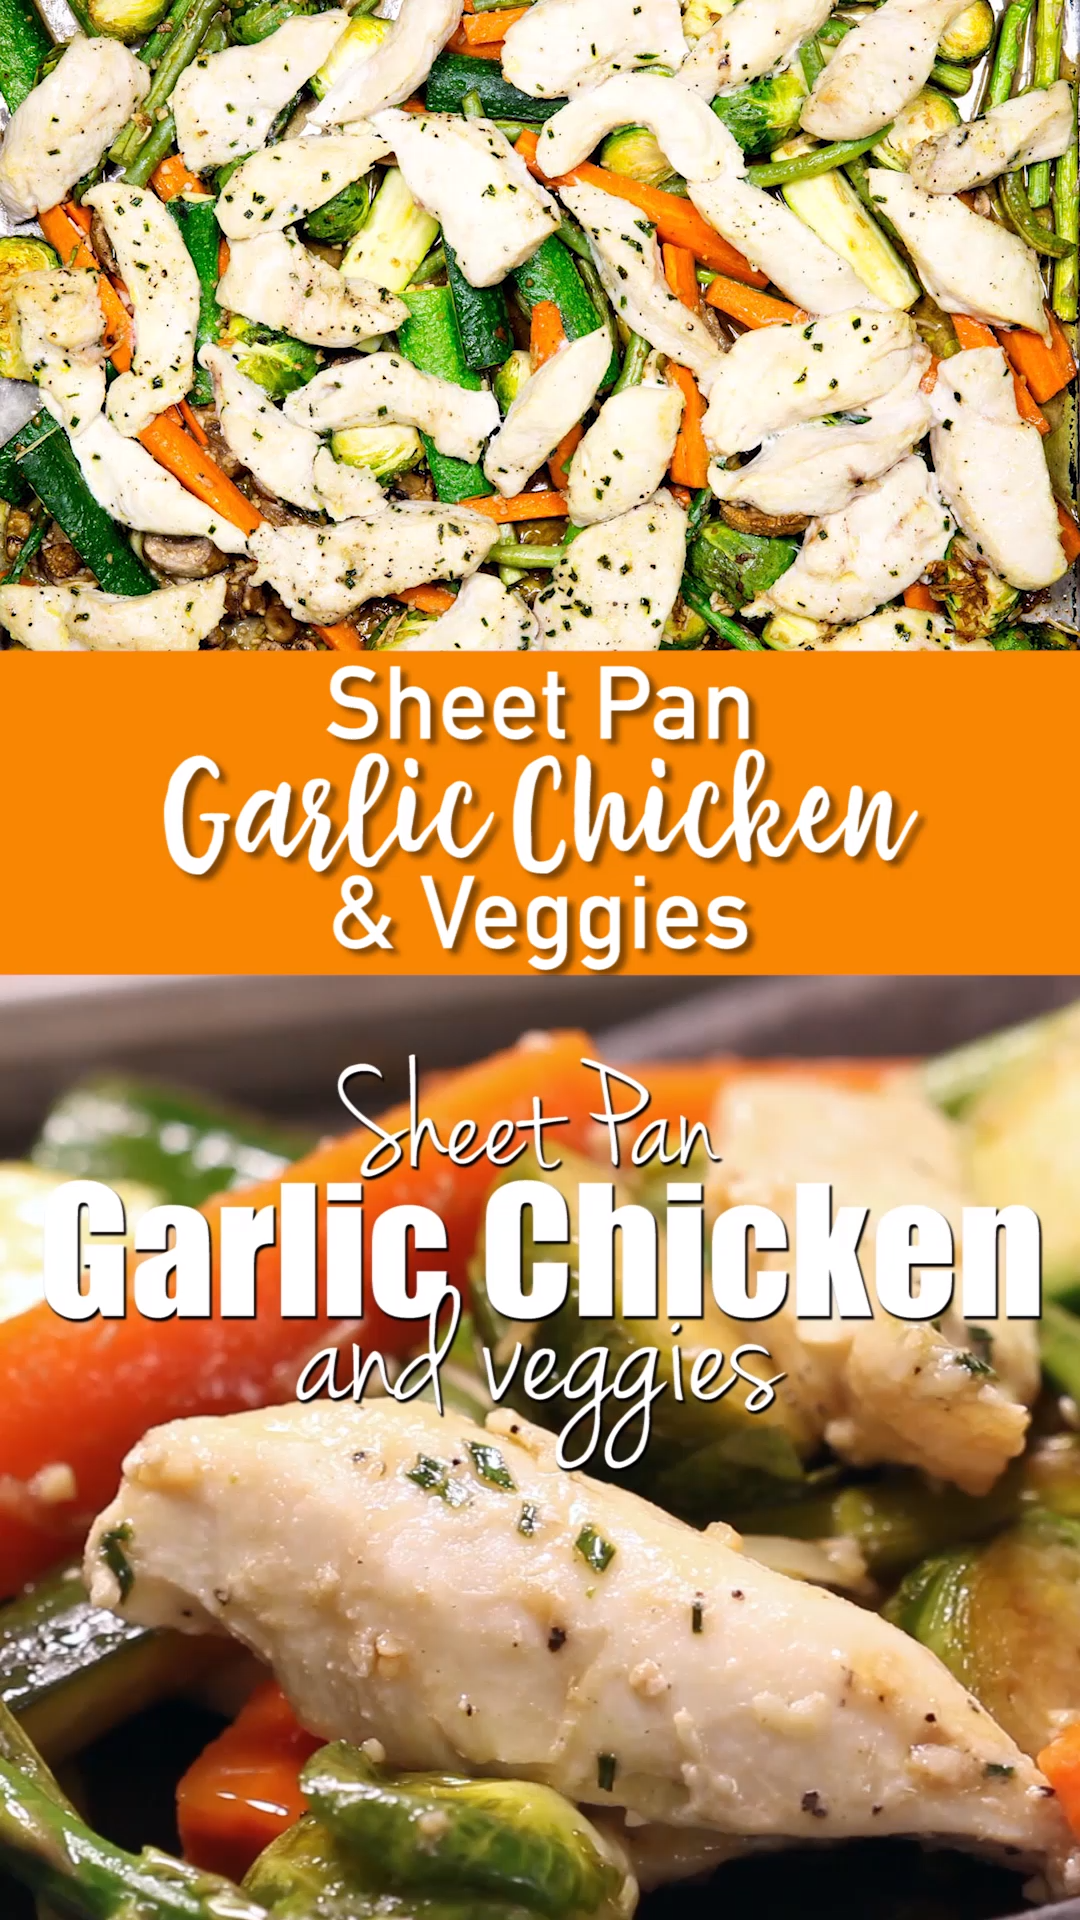 Garlic Chicken and Veggies -   13 healthy recipes For The Week veggies ideas